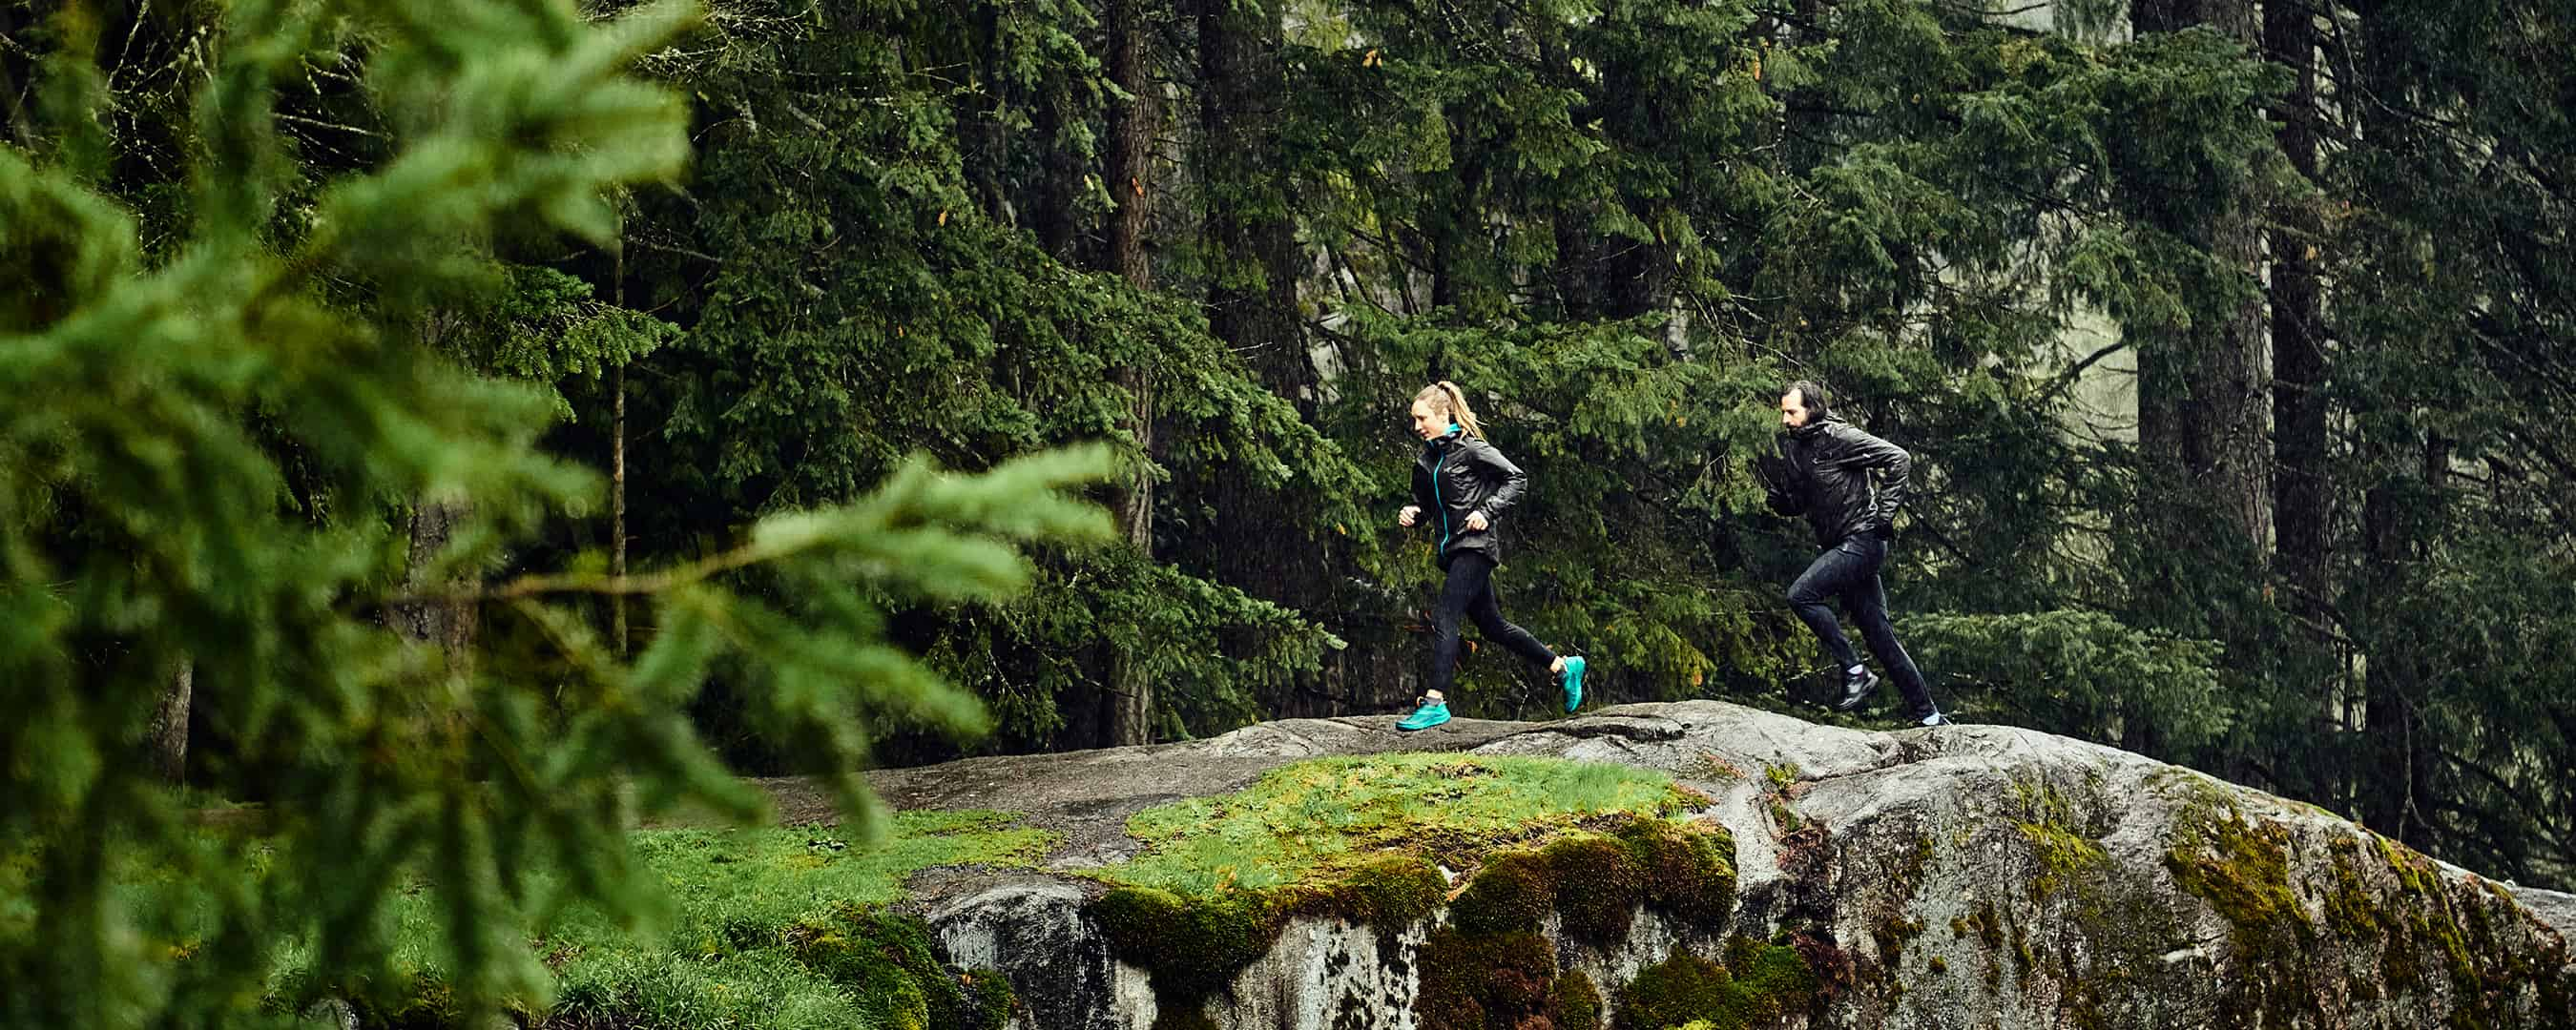 . DANCING WITH THE MOUNTAINS: Trail Running In The Rain With Arc'teryx Marketer Josh Barringer